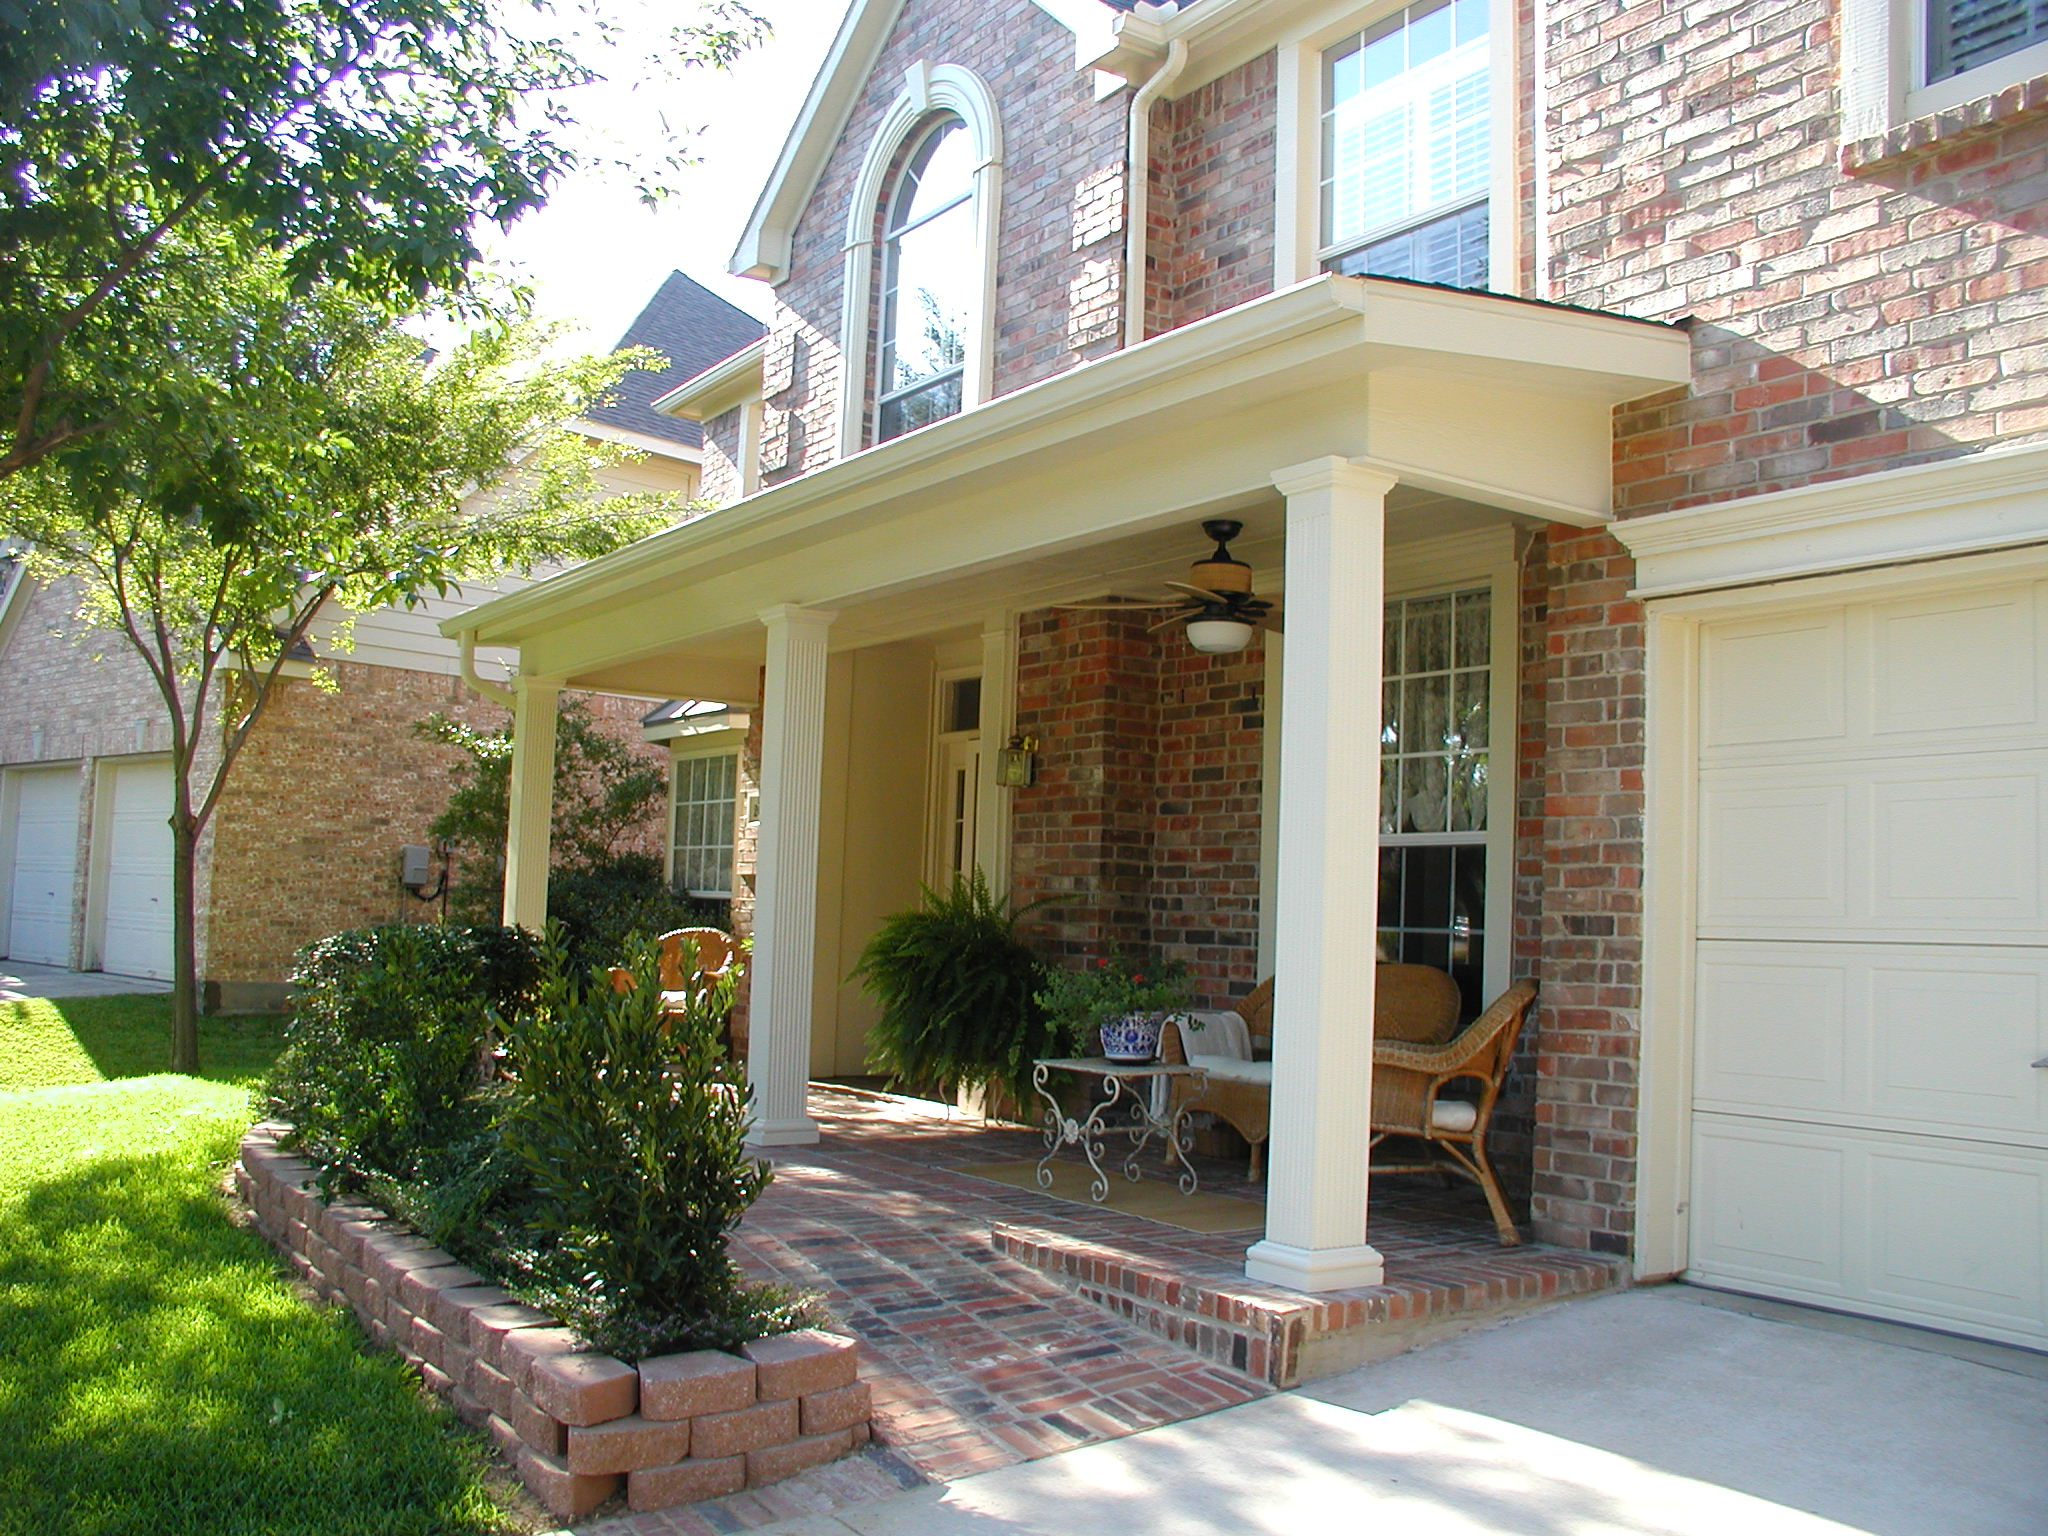 Image from for Front porch patio ideas